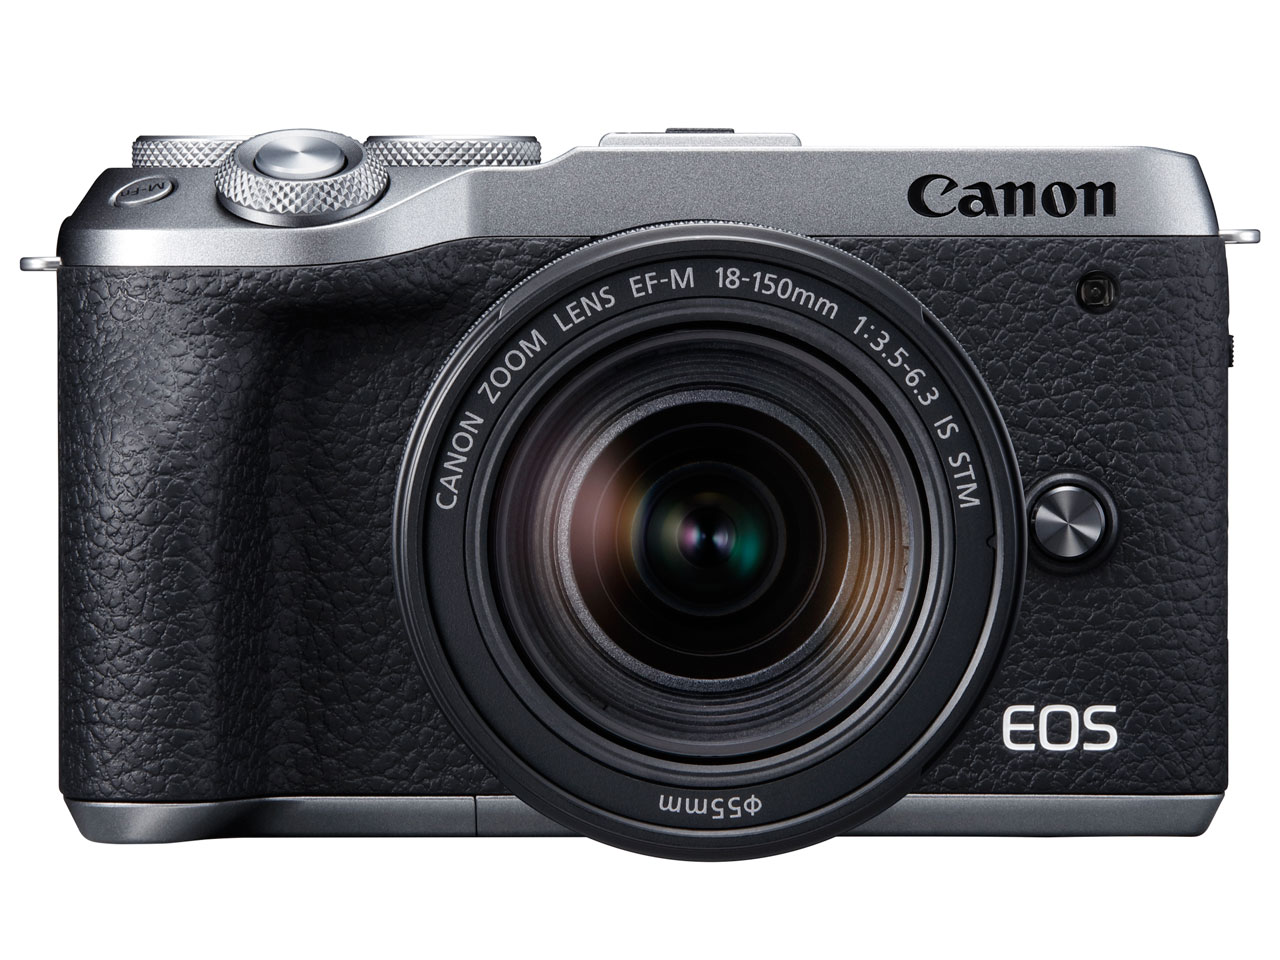 Canon EOS M6 Mark II EF-M18-150 IS STM レンズキット [シルバー]【お取り寄せ商品(3週間~4週間程度での入荷、発送)】